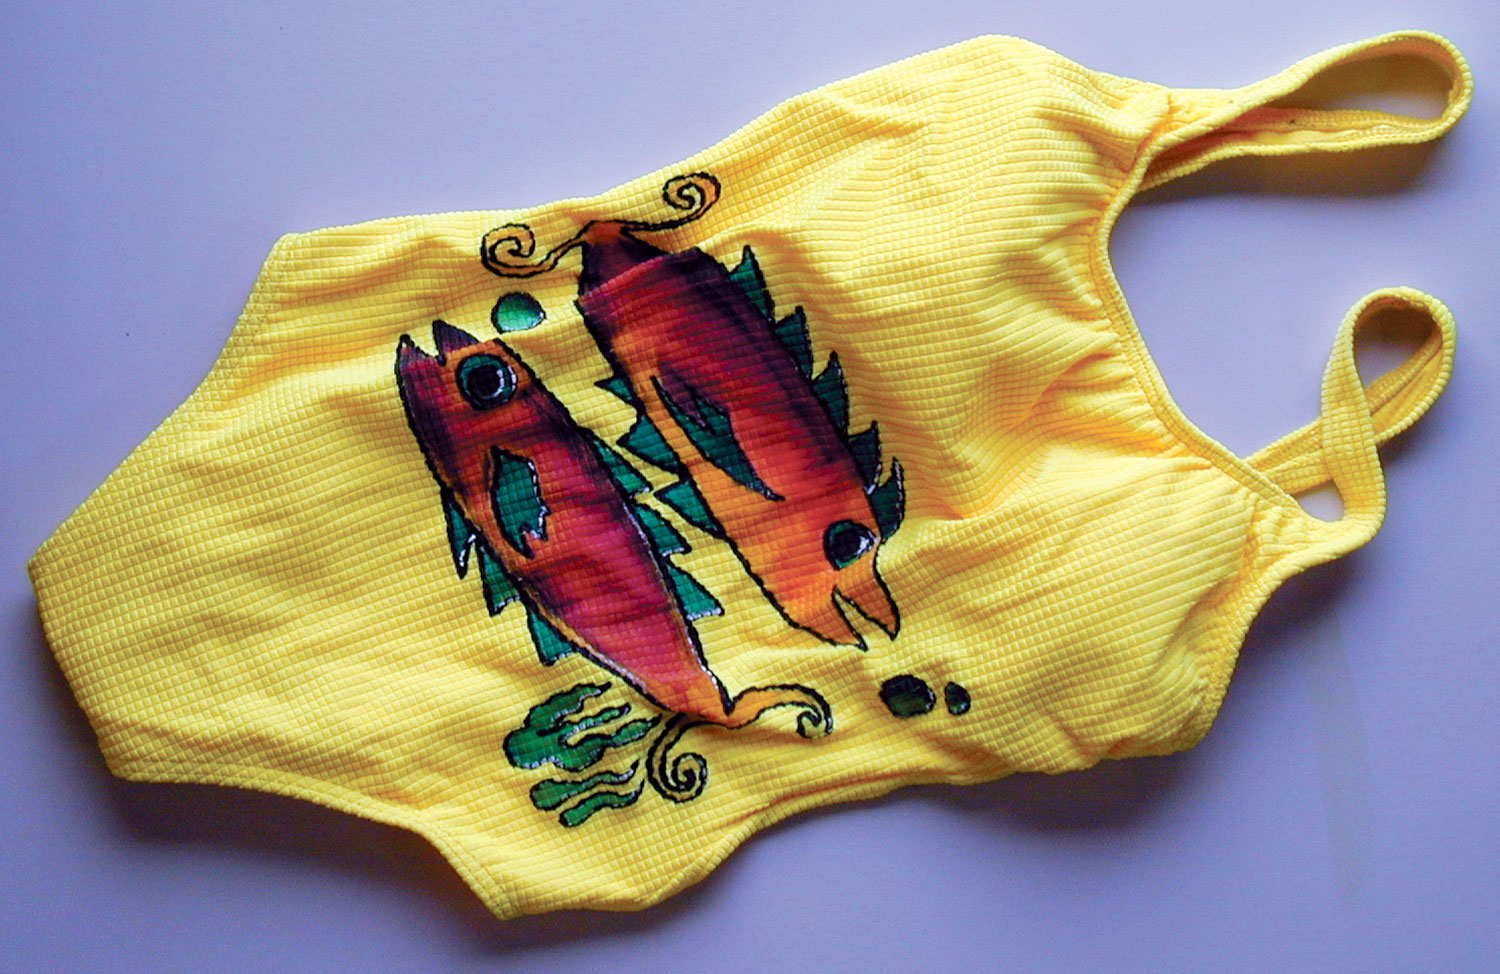 Painted swimsuit by Celia Buchanan